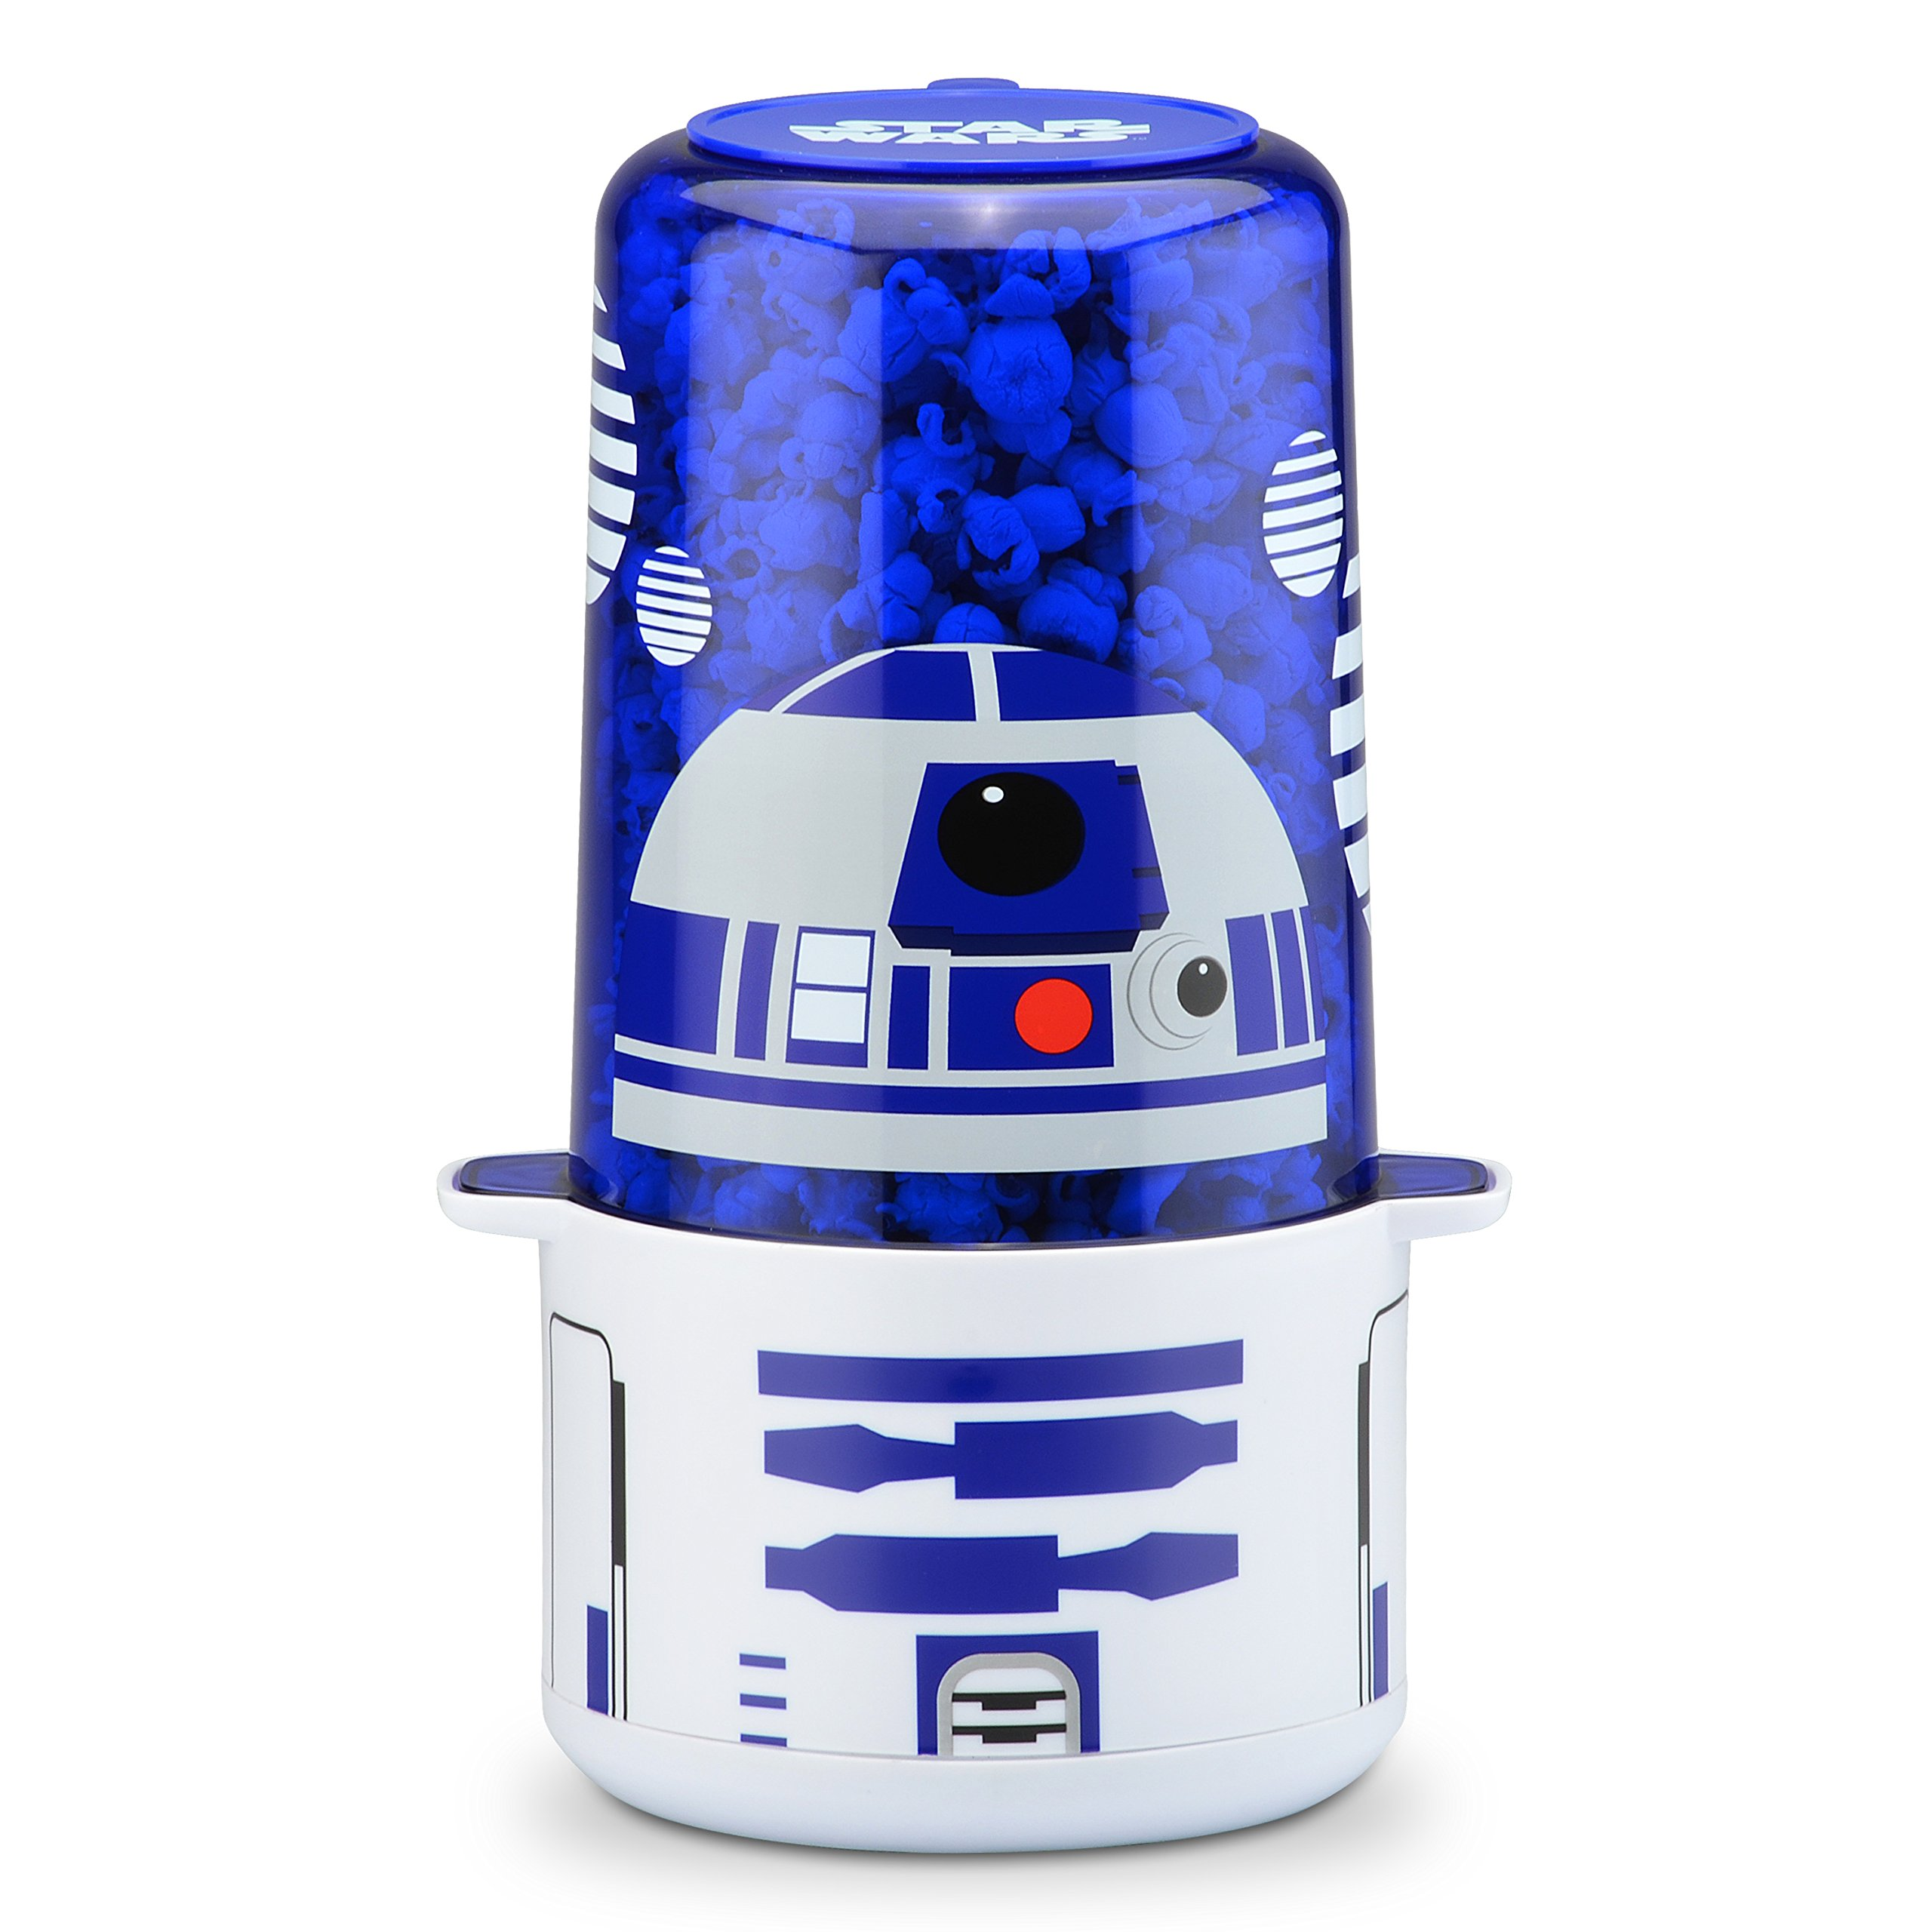 Star Wars R2-D2 Mini Stir Popcorn Popper